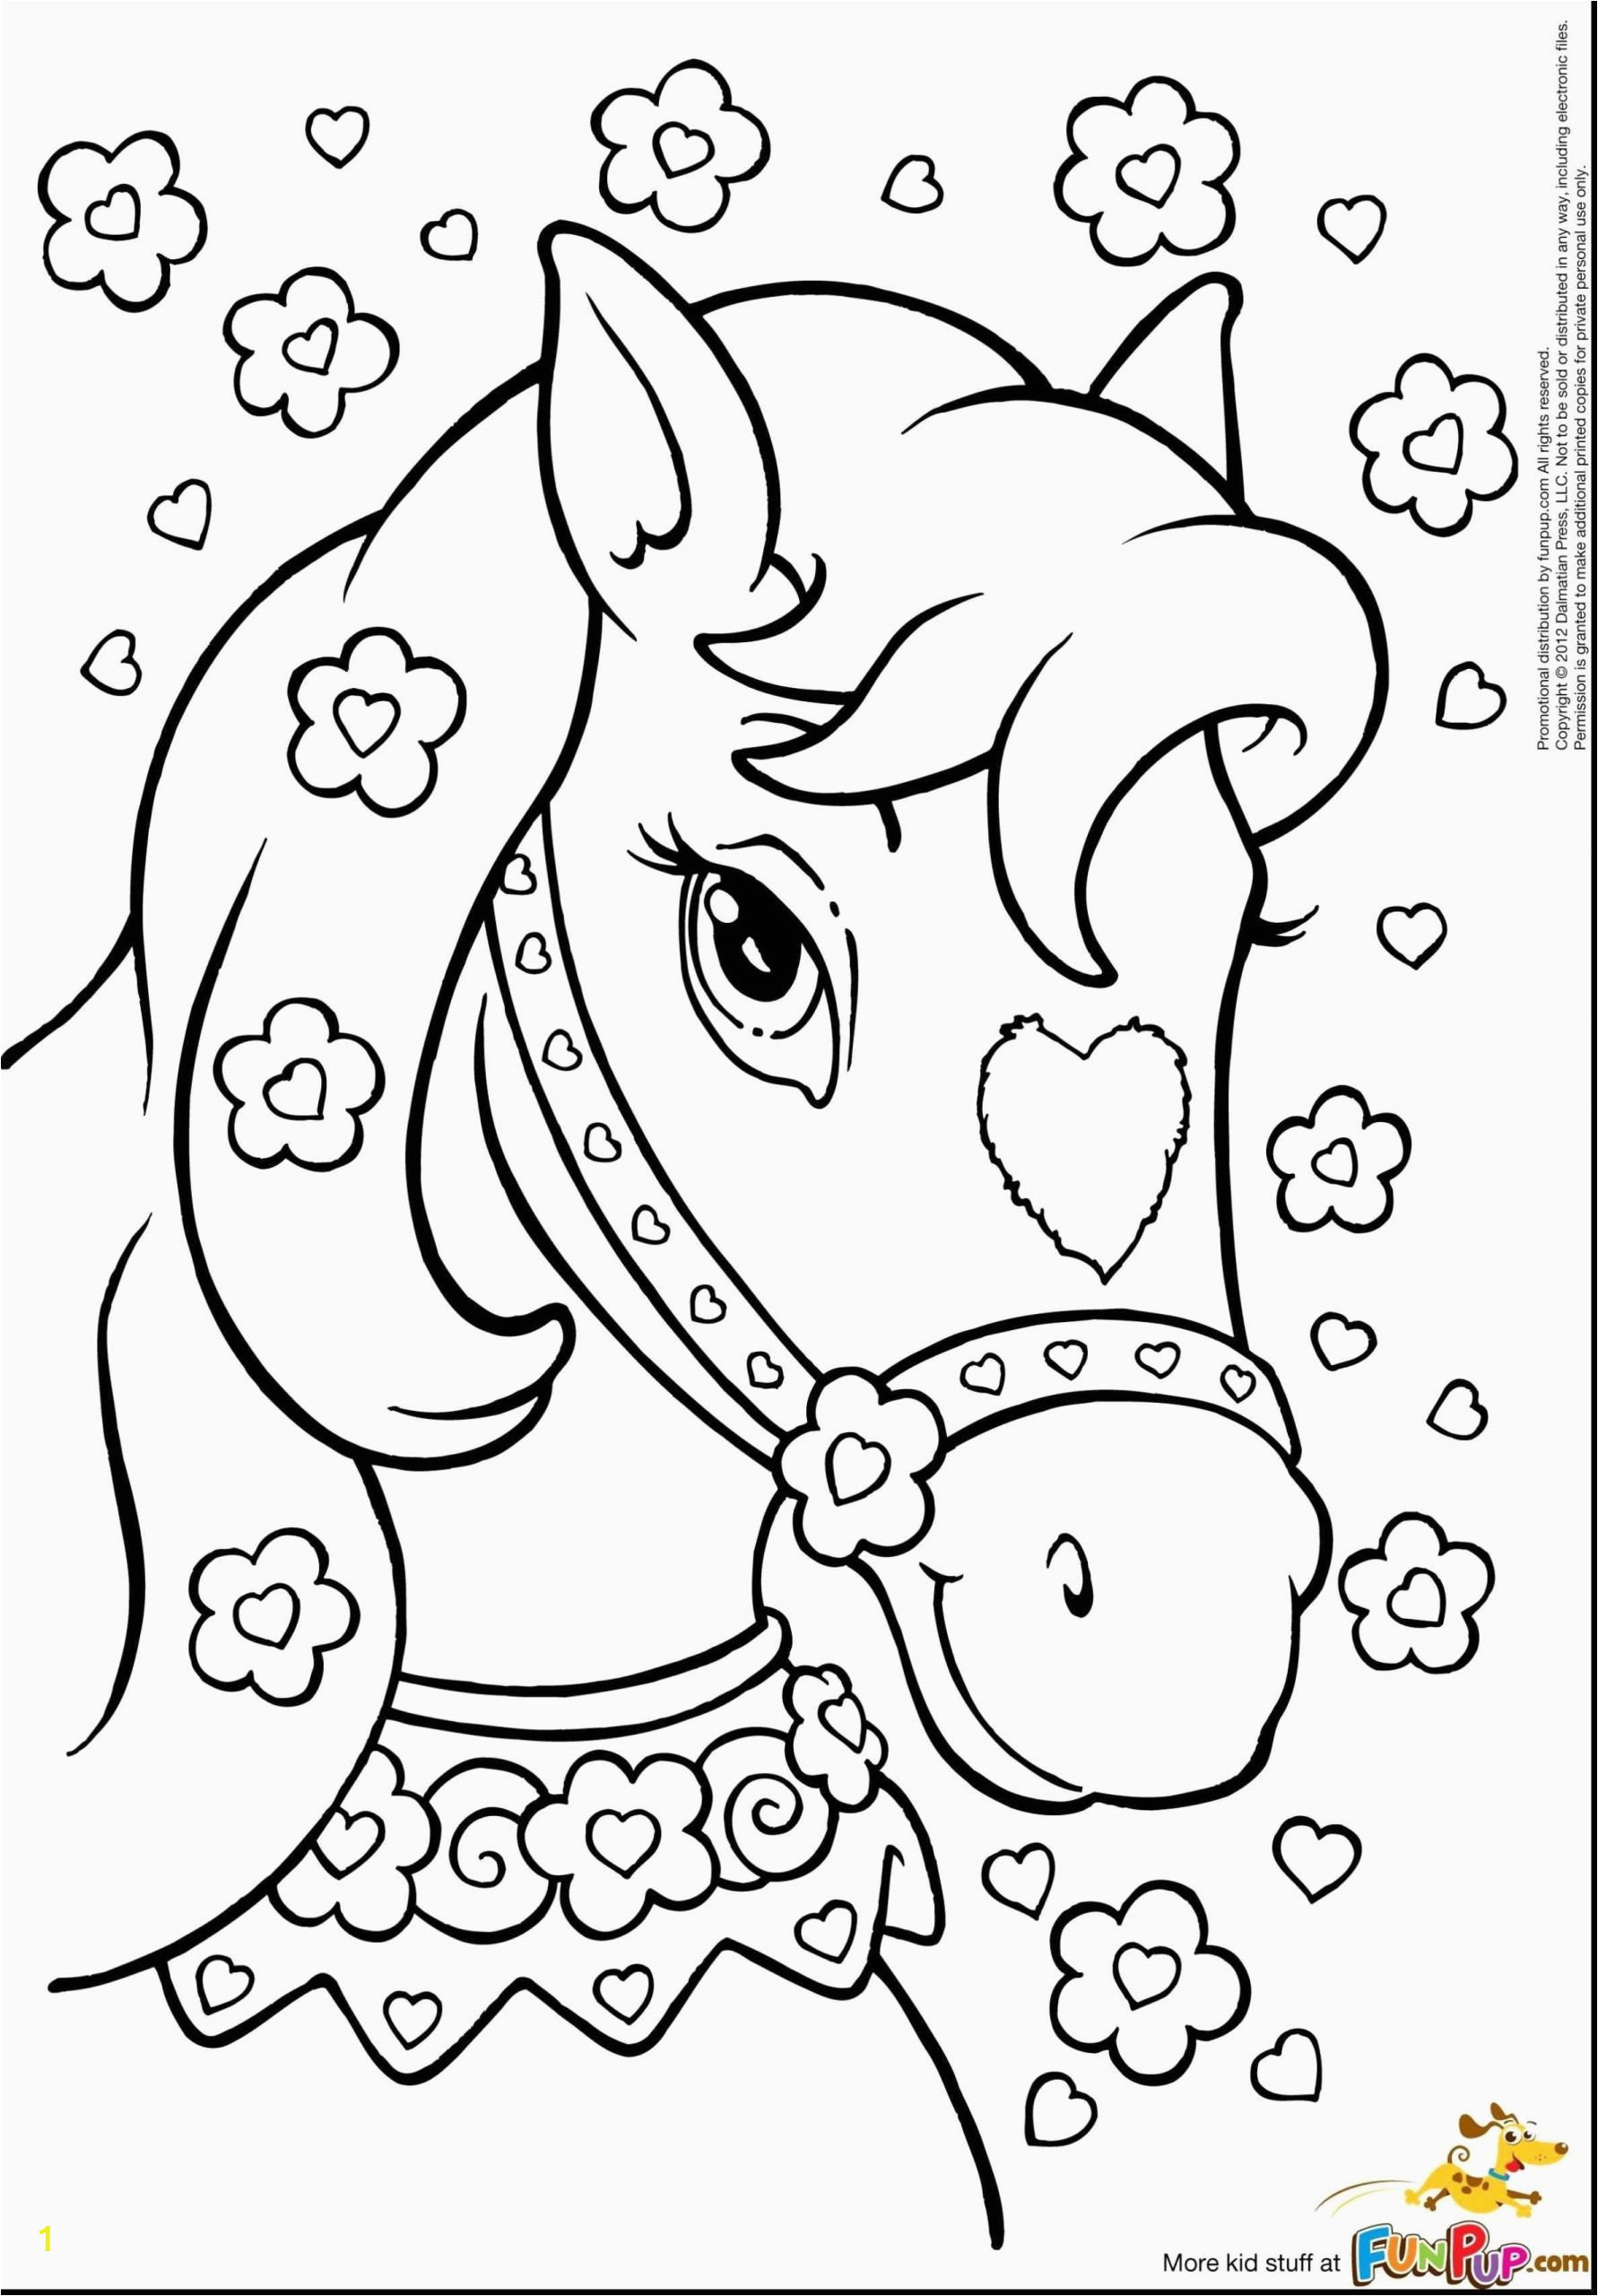 princess coloring book printable lovely coloring african animals beautiful disney princesses of princess coloring book printable scaled